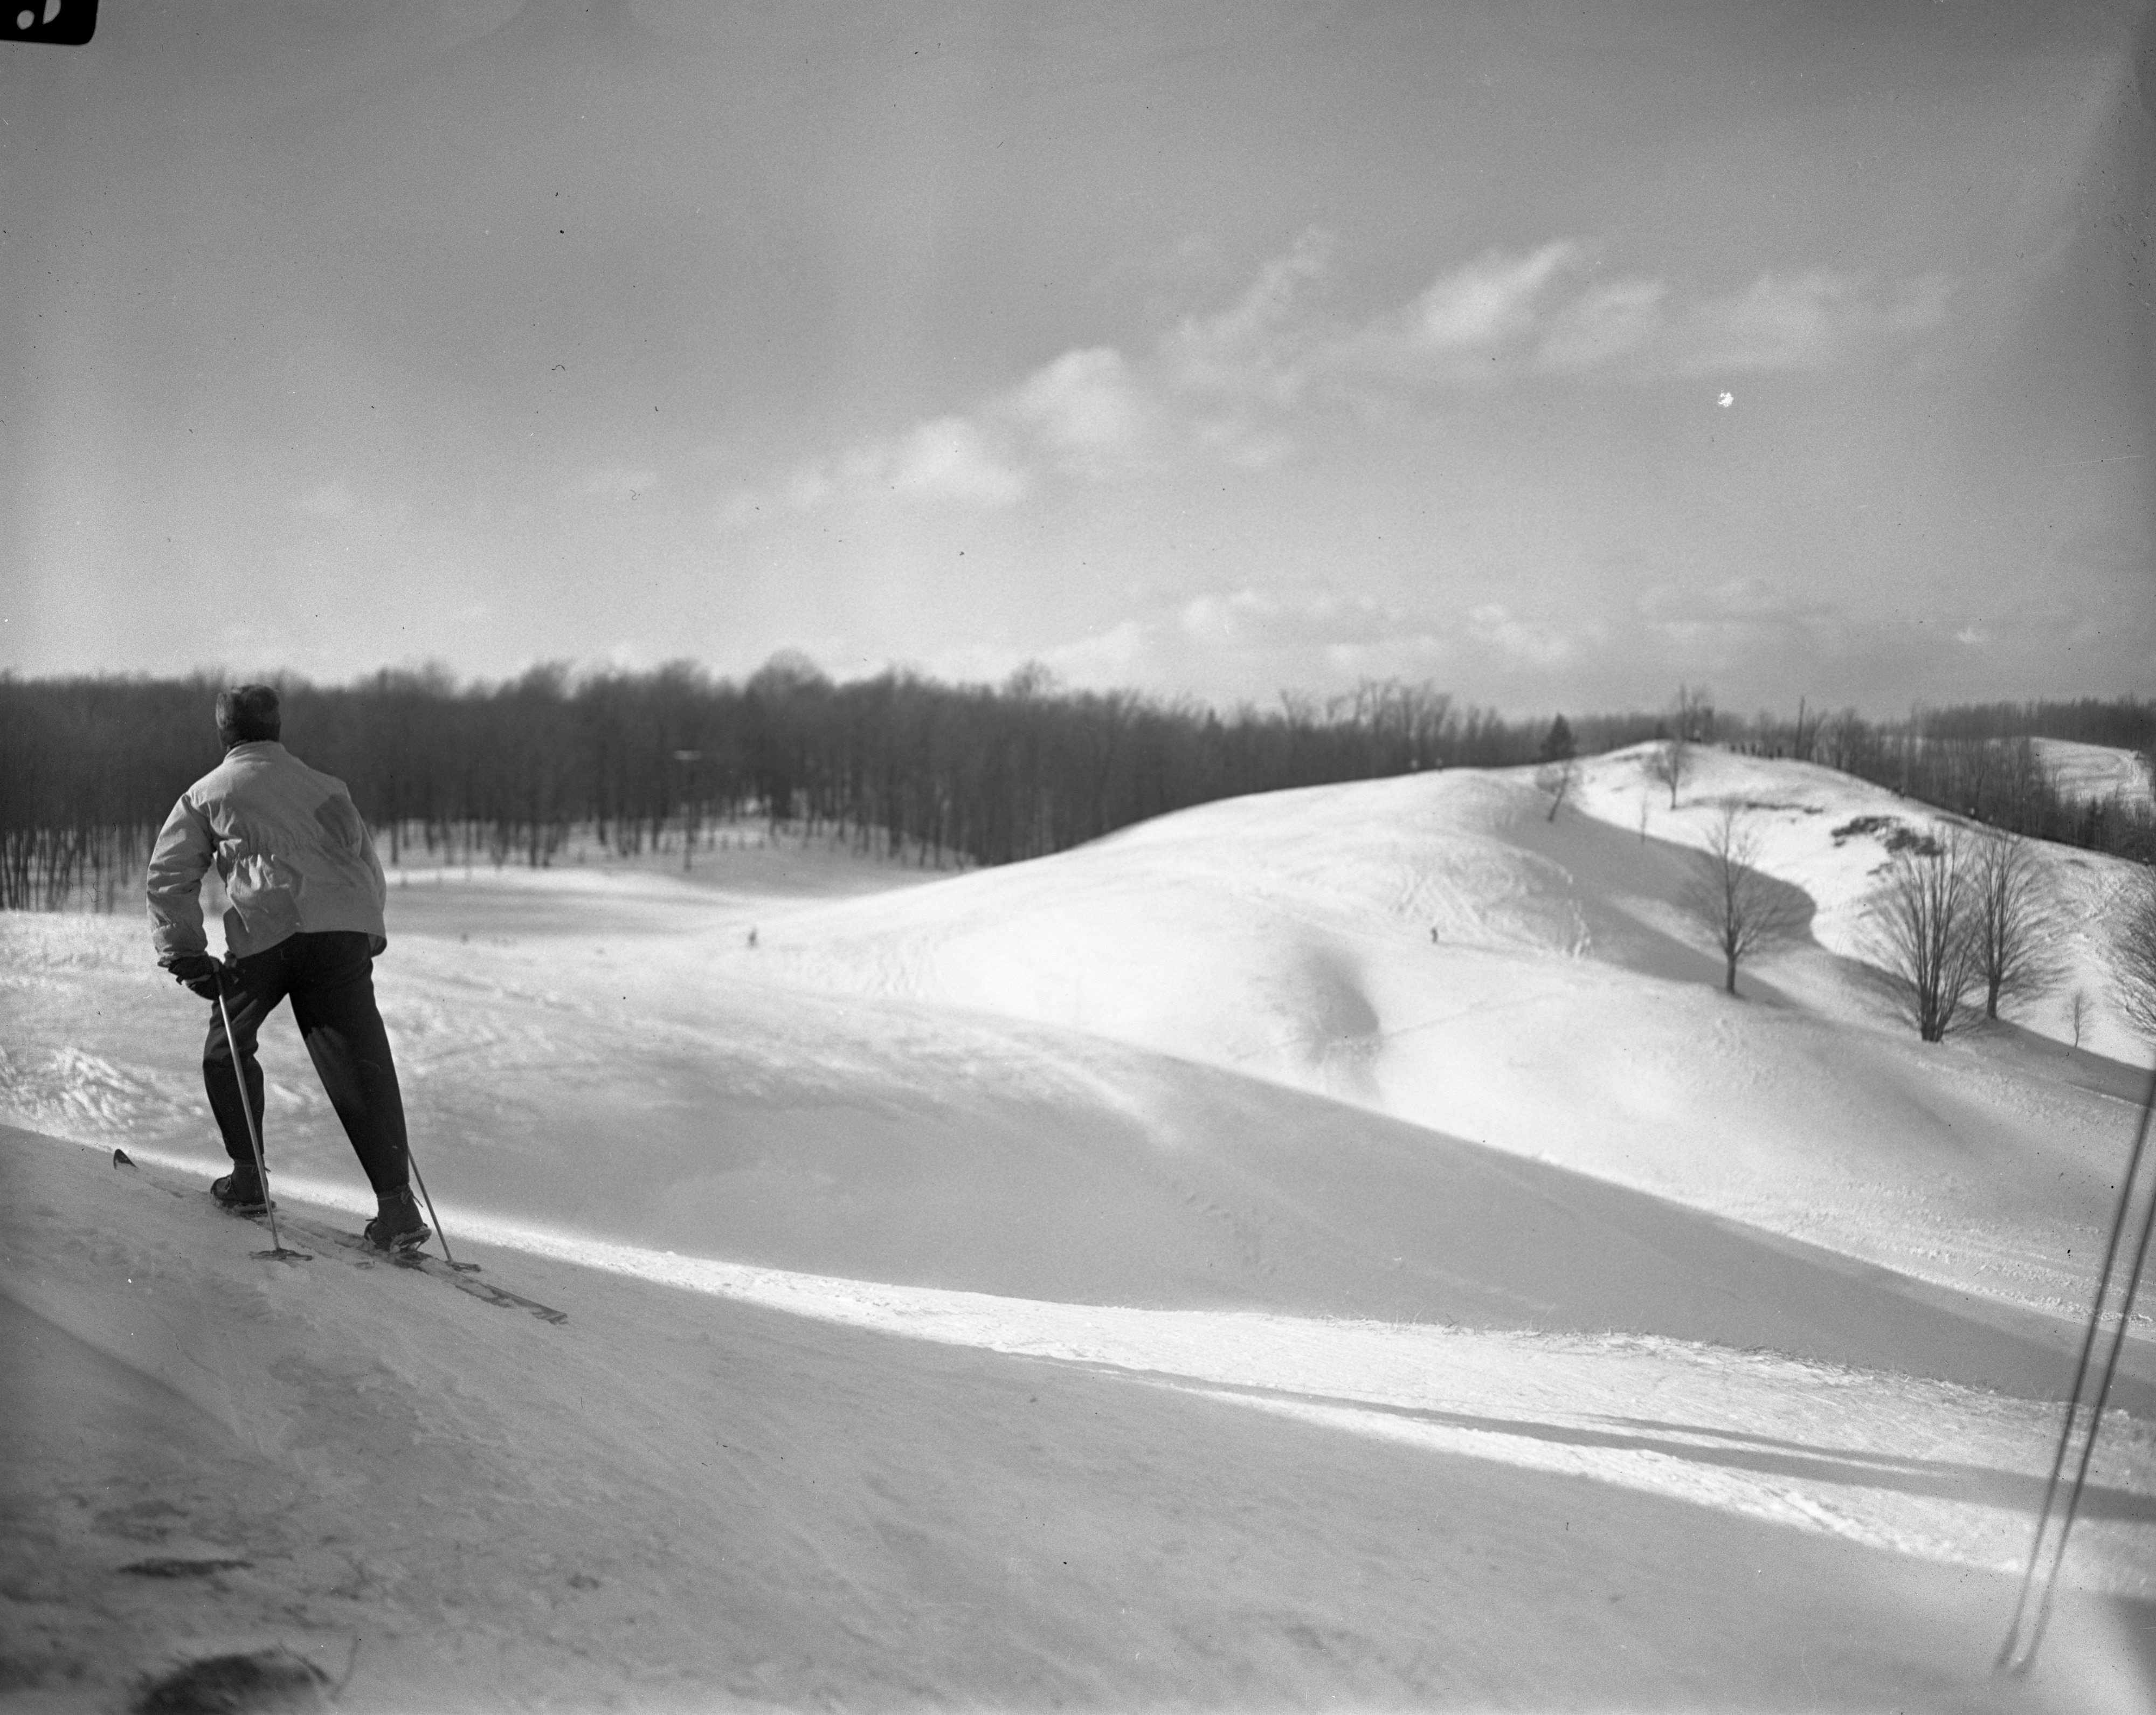 Skier Looking Out Onto The Hills At The Otsego Club, February 1946 image